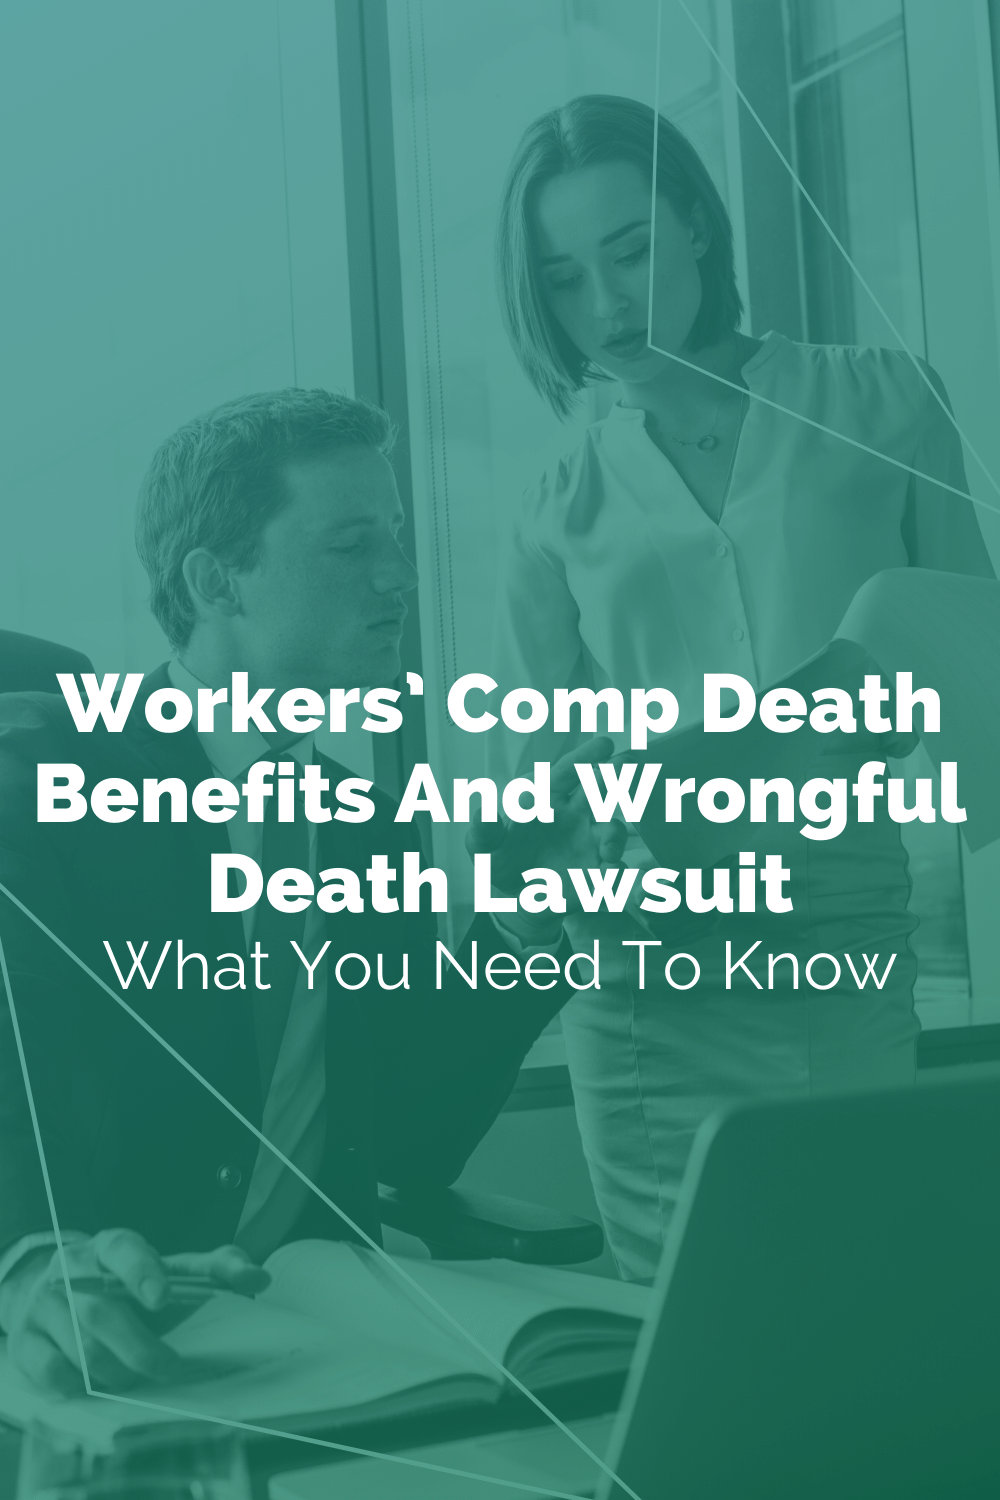 Workers\' Comp Death Benefits And Wrongful Death Lawsuit: Here\'s What To Know